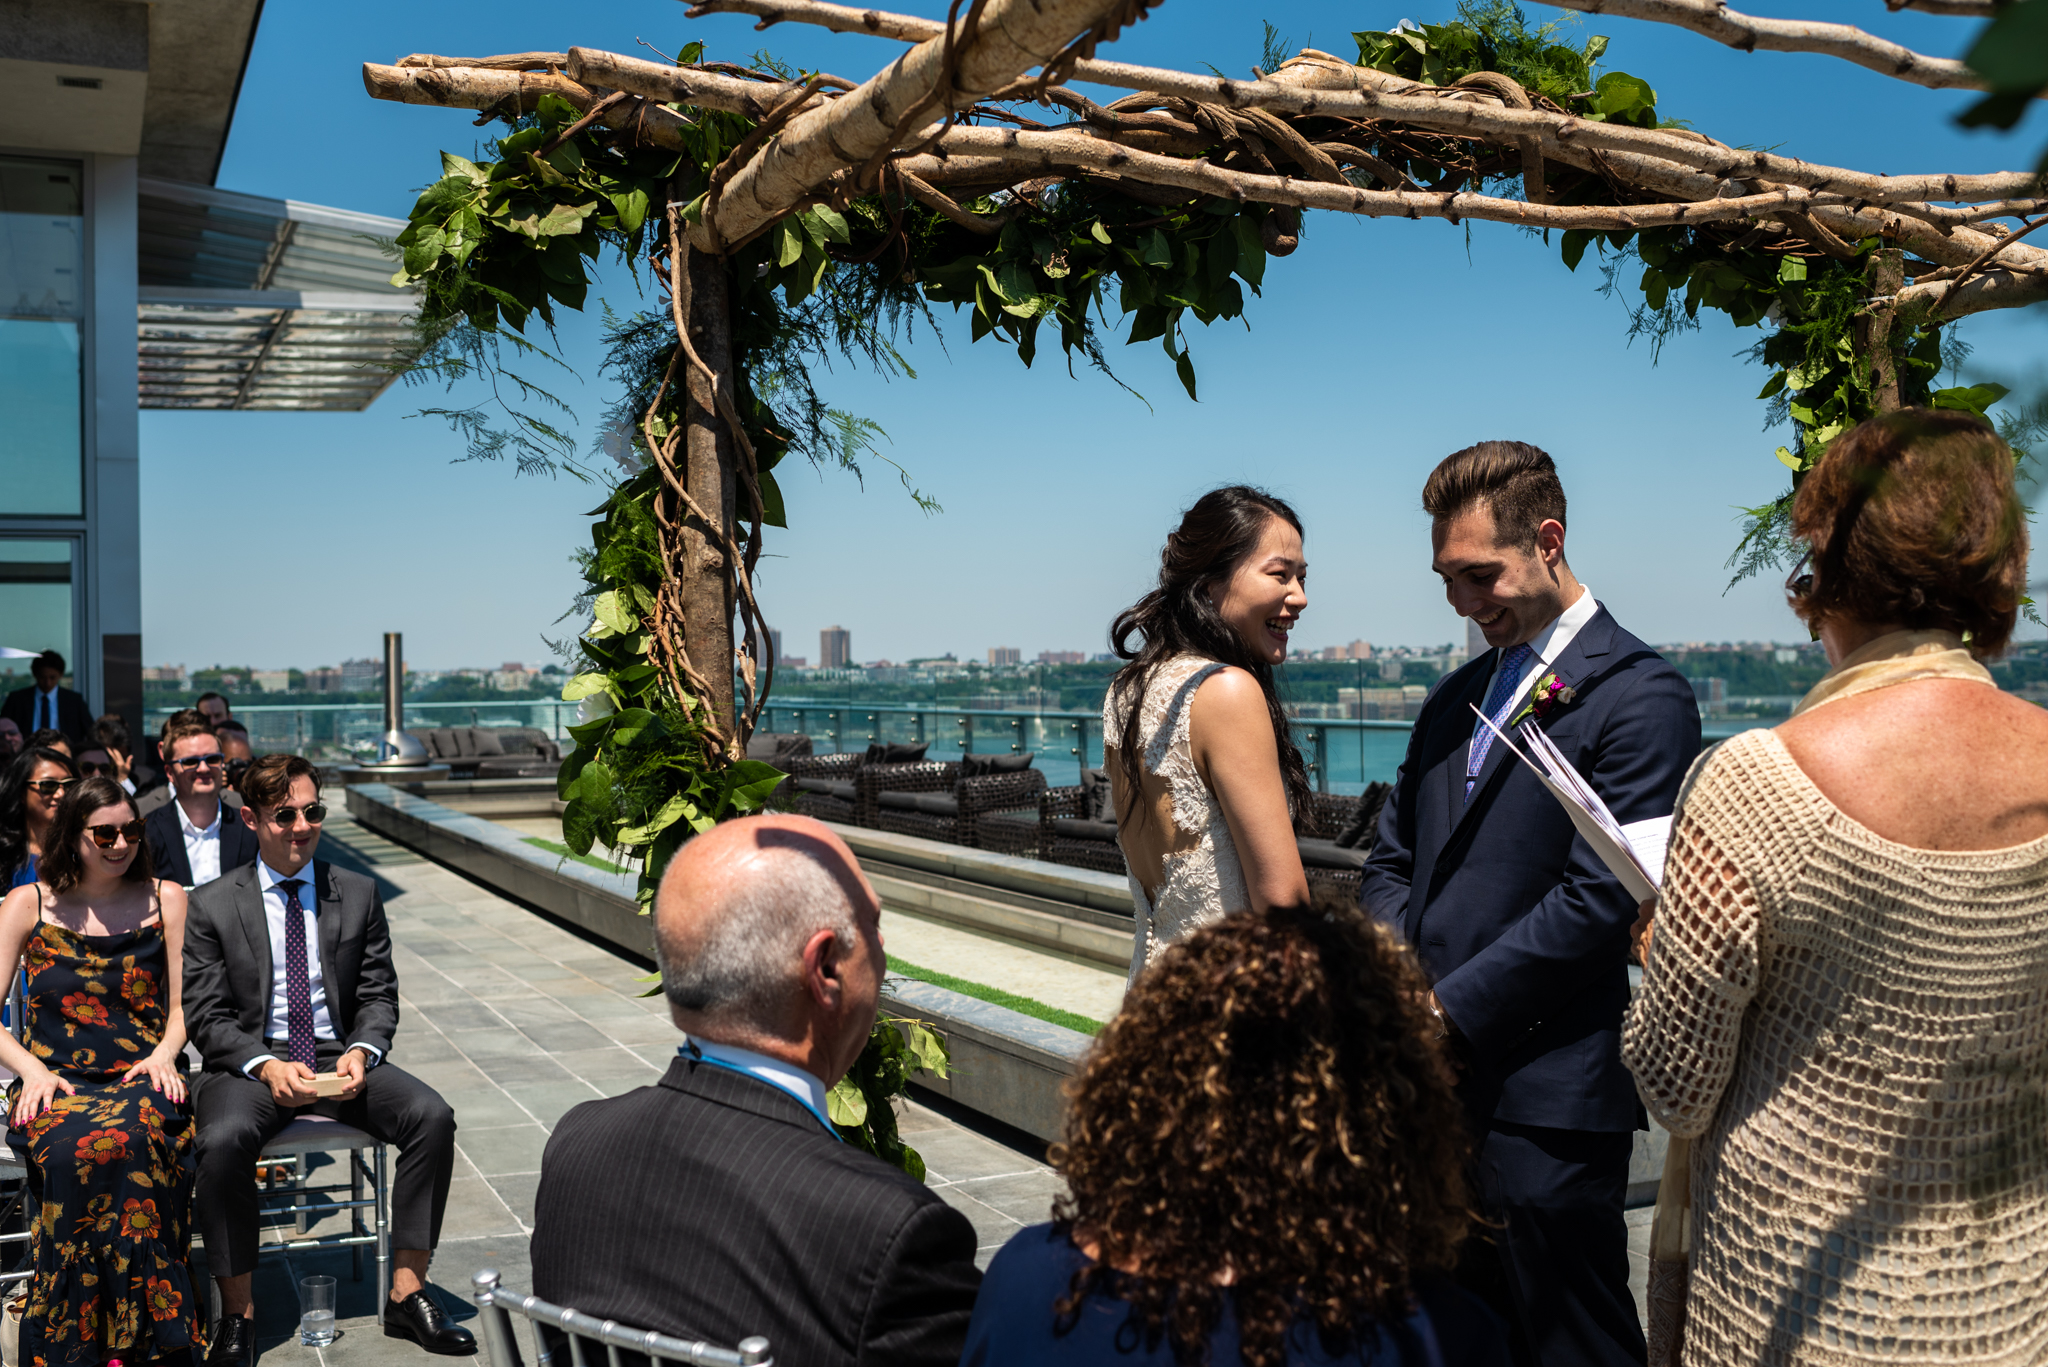 Saki & Zach's Wedding by Romina Hendlin-008.jpg